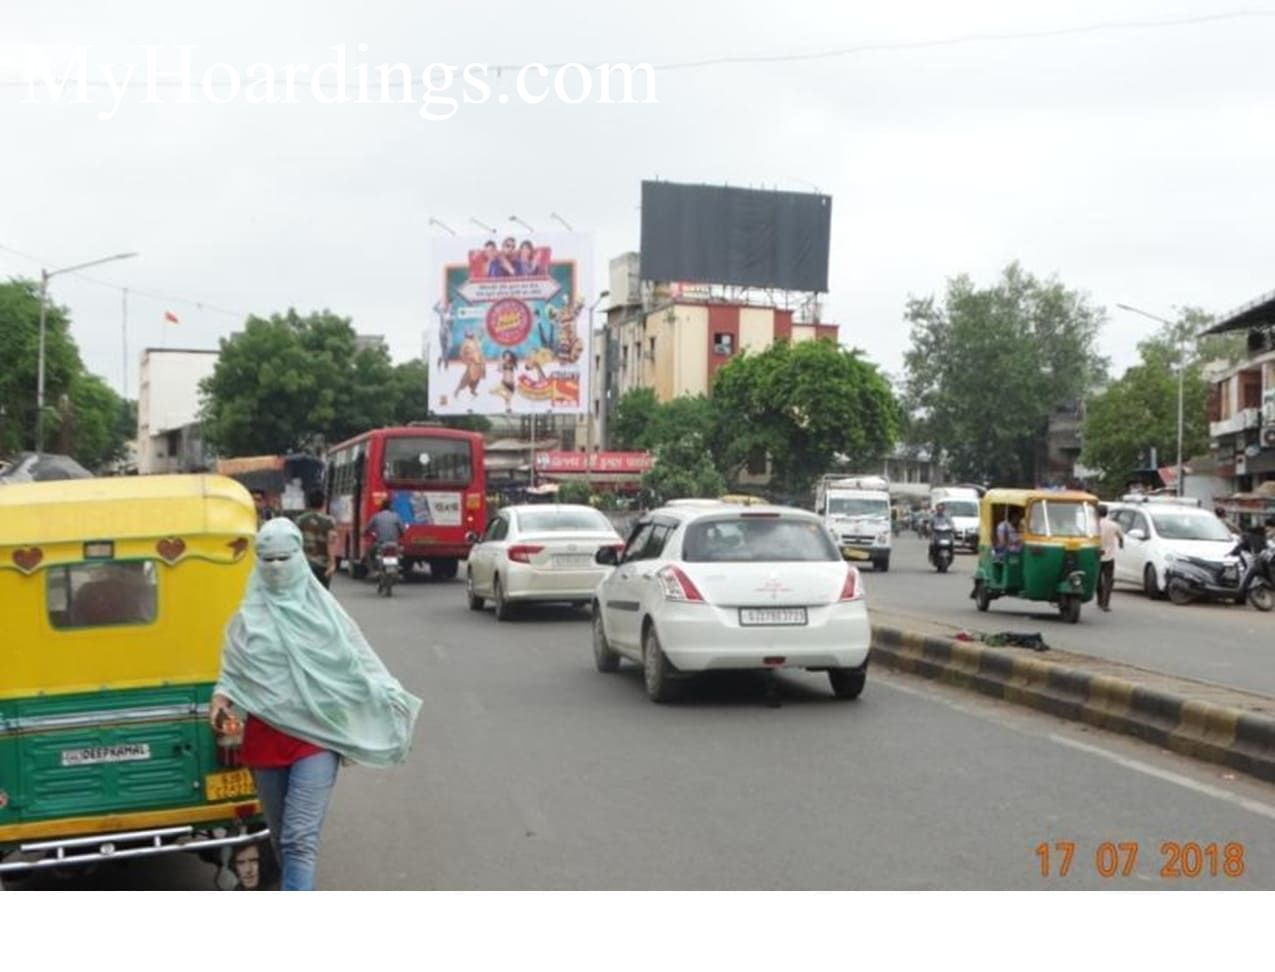 Billboard at 10 Acr Mall lake in Ahmedabad, Best Outdoor Hoardings Advertising Company Ahmedabad